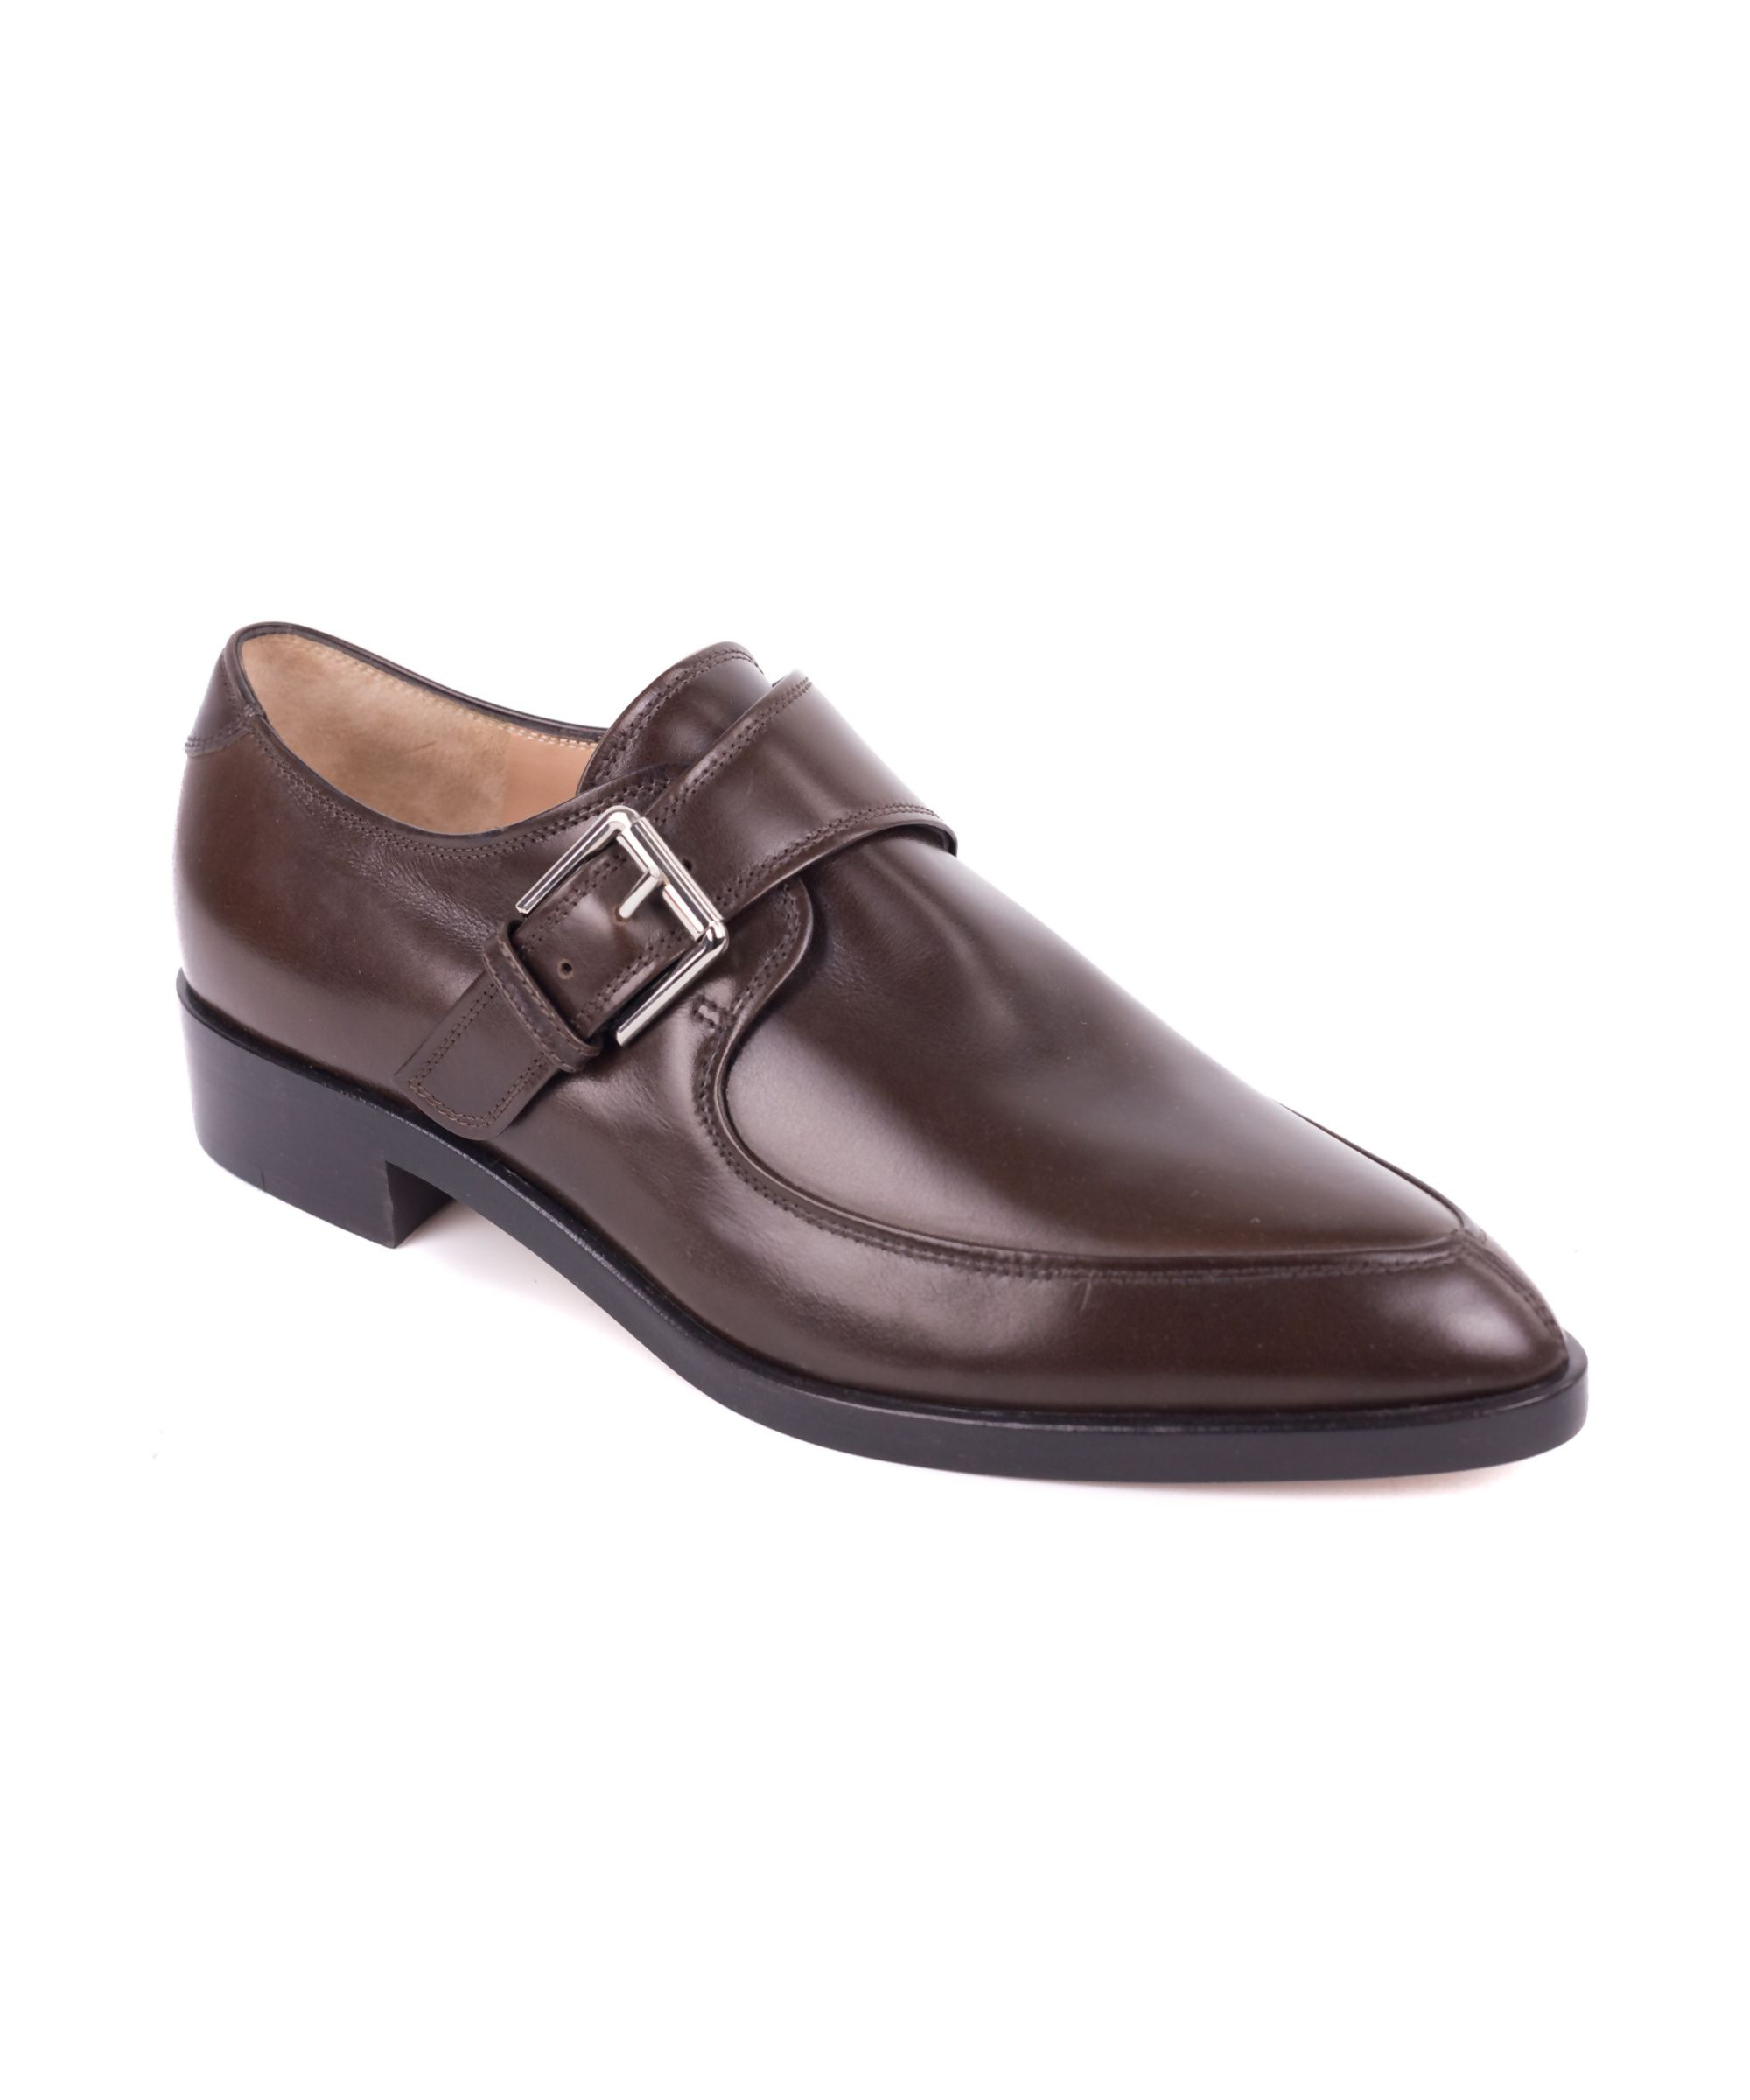 GIANVITO ROSSI | Gianvito Rossi Brown Pointed Toe Monk Strap Shoes #Shoes  #Flats #